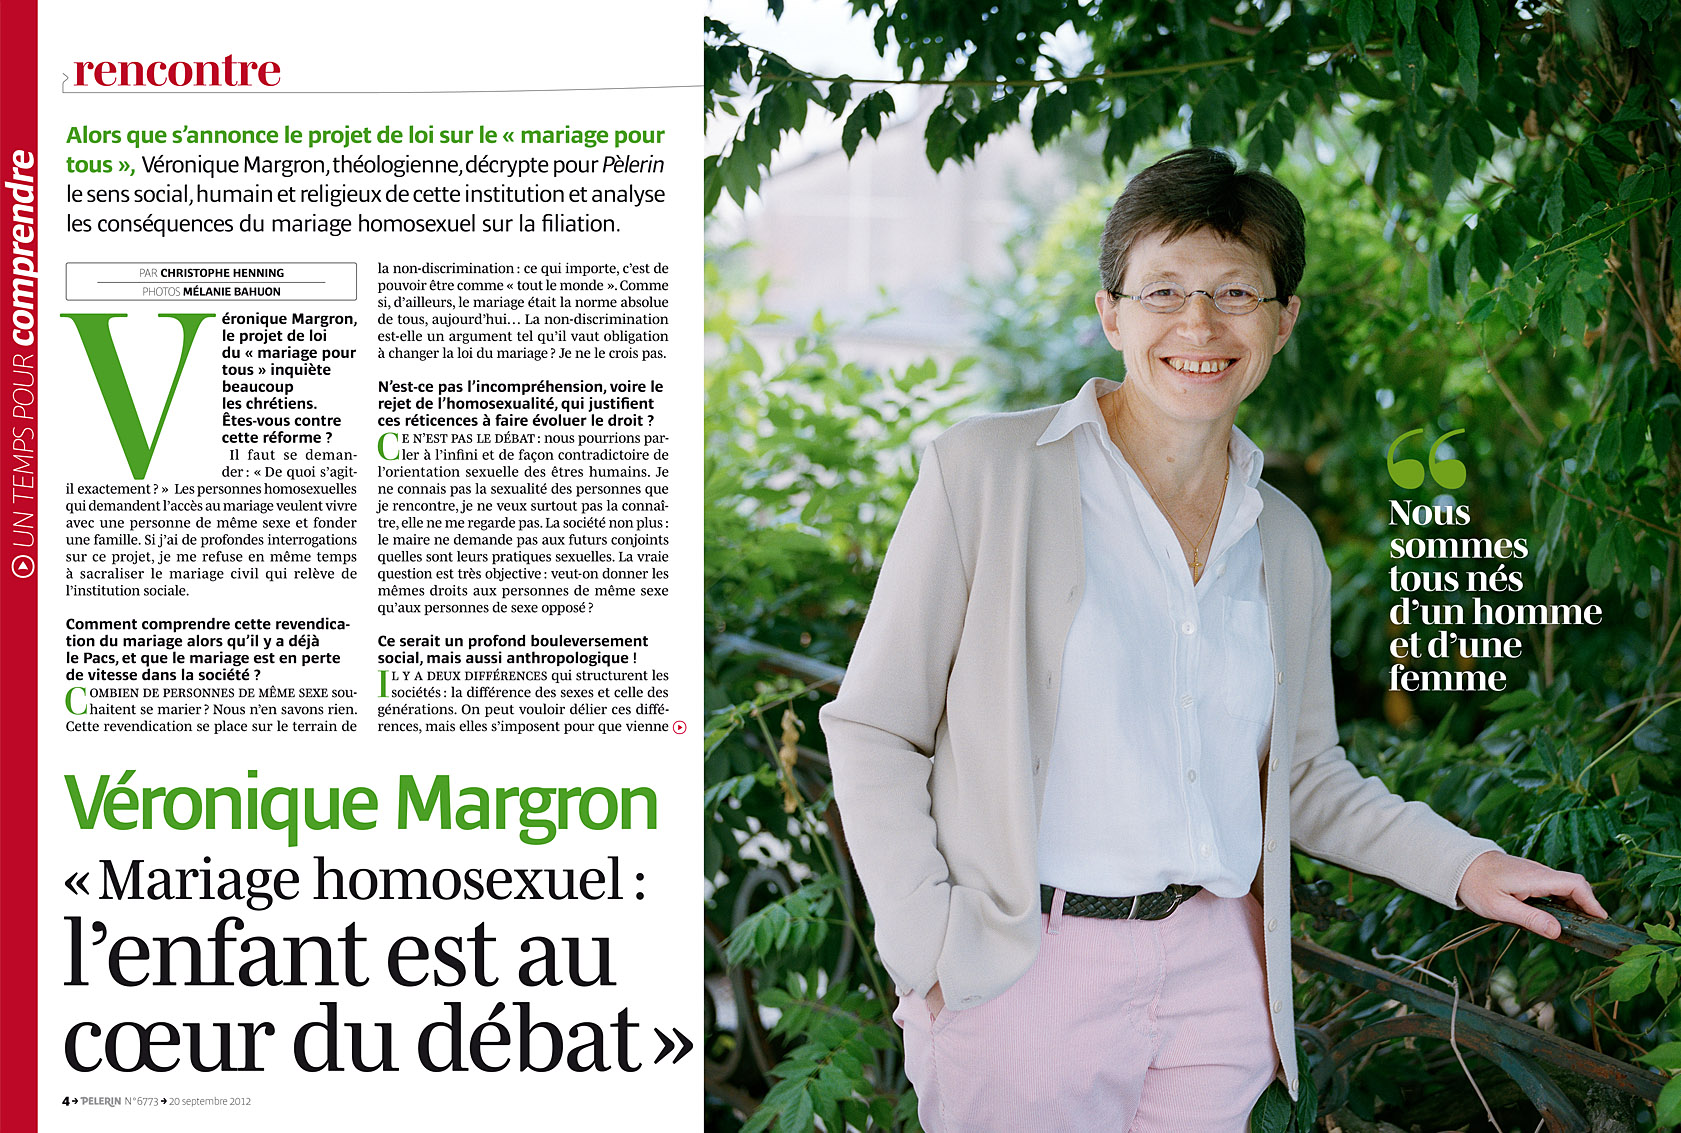 Véronique Margron, Pèlerin du 20 septembre 2012.